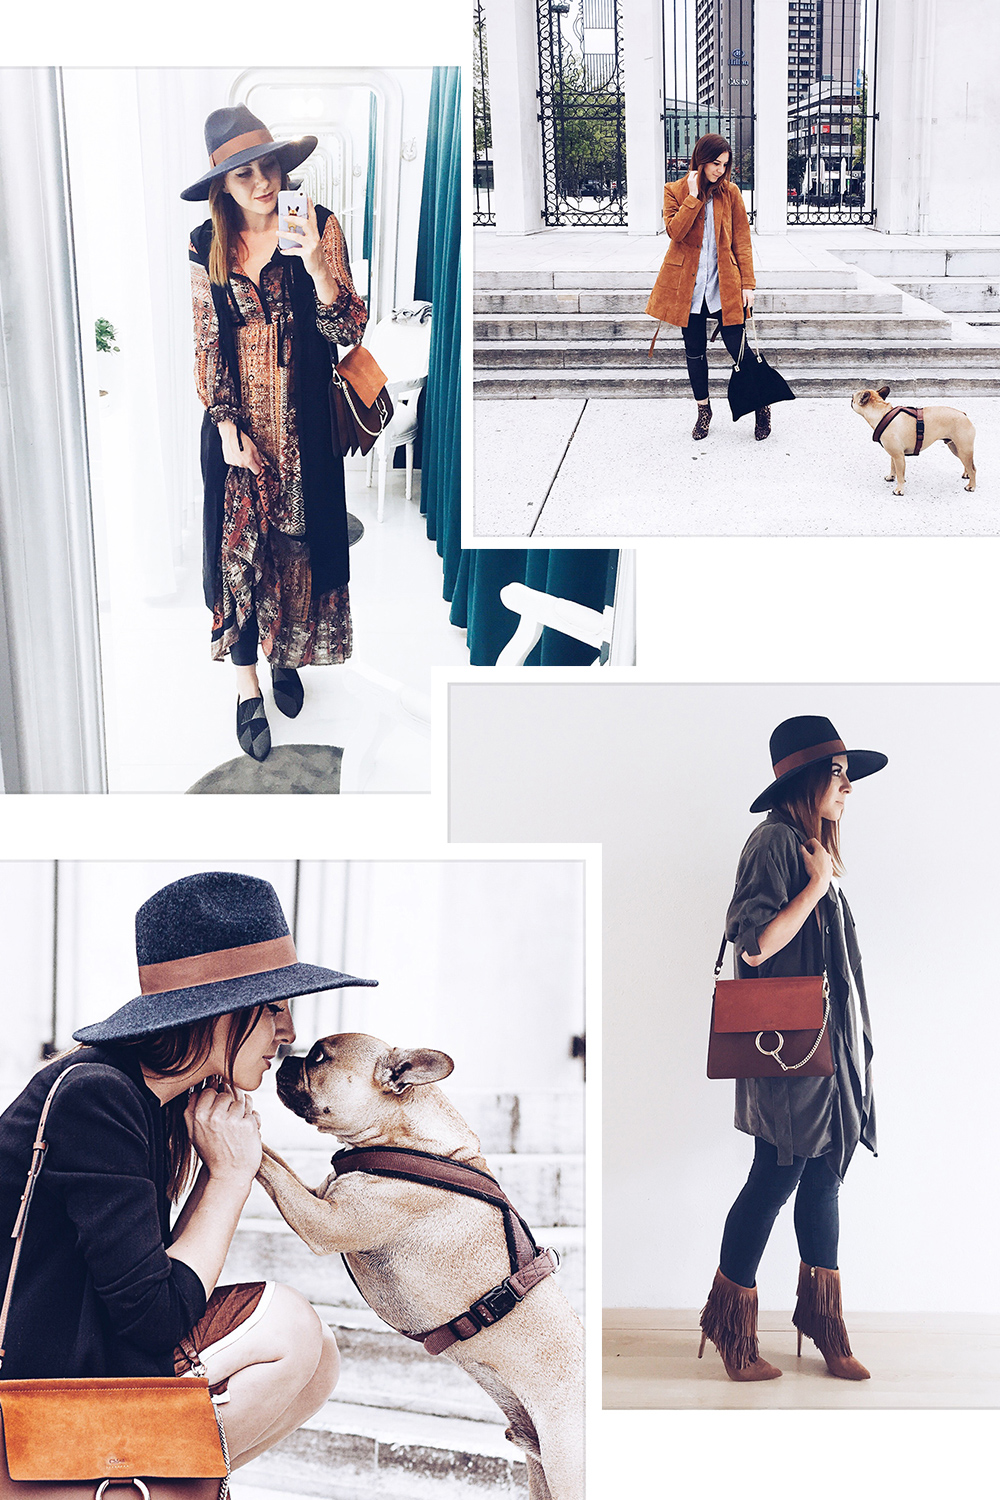 who is mocca, modeblog, fashionblog, ootd, outfit, alltagsoutfit, boho maxikleid sandro ferrone, chloe faye, sam edelman fransenboots, fromwhereistand, gardasee outfit, frenchie, wildledermantel zara, fedora, whoismocca.com